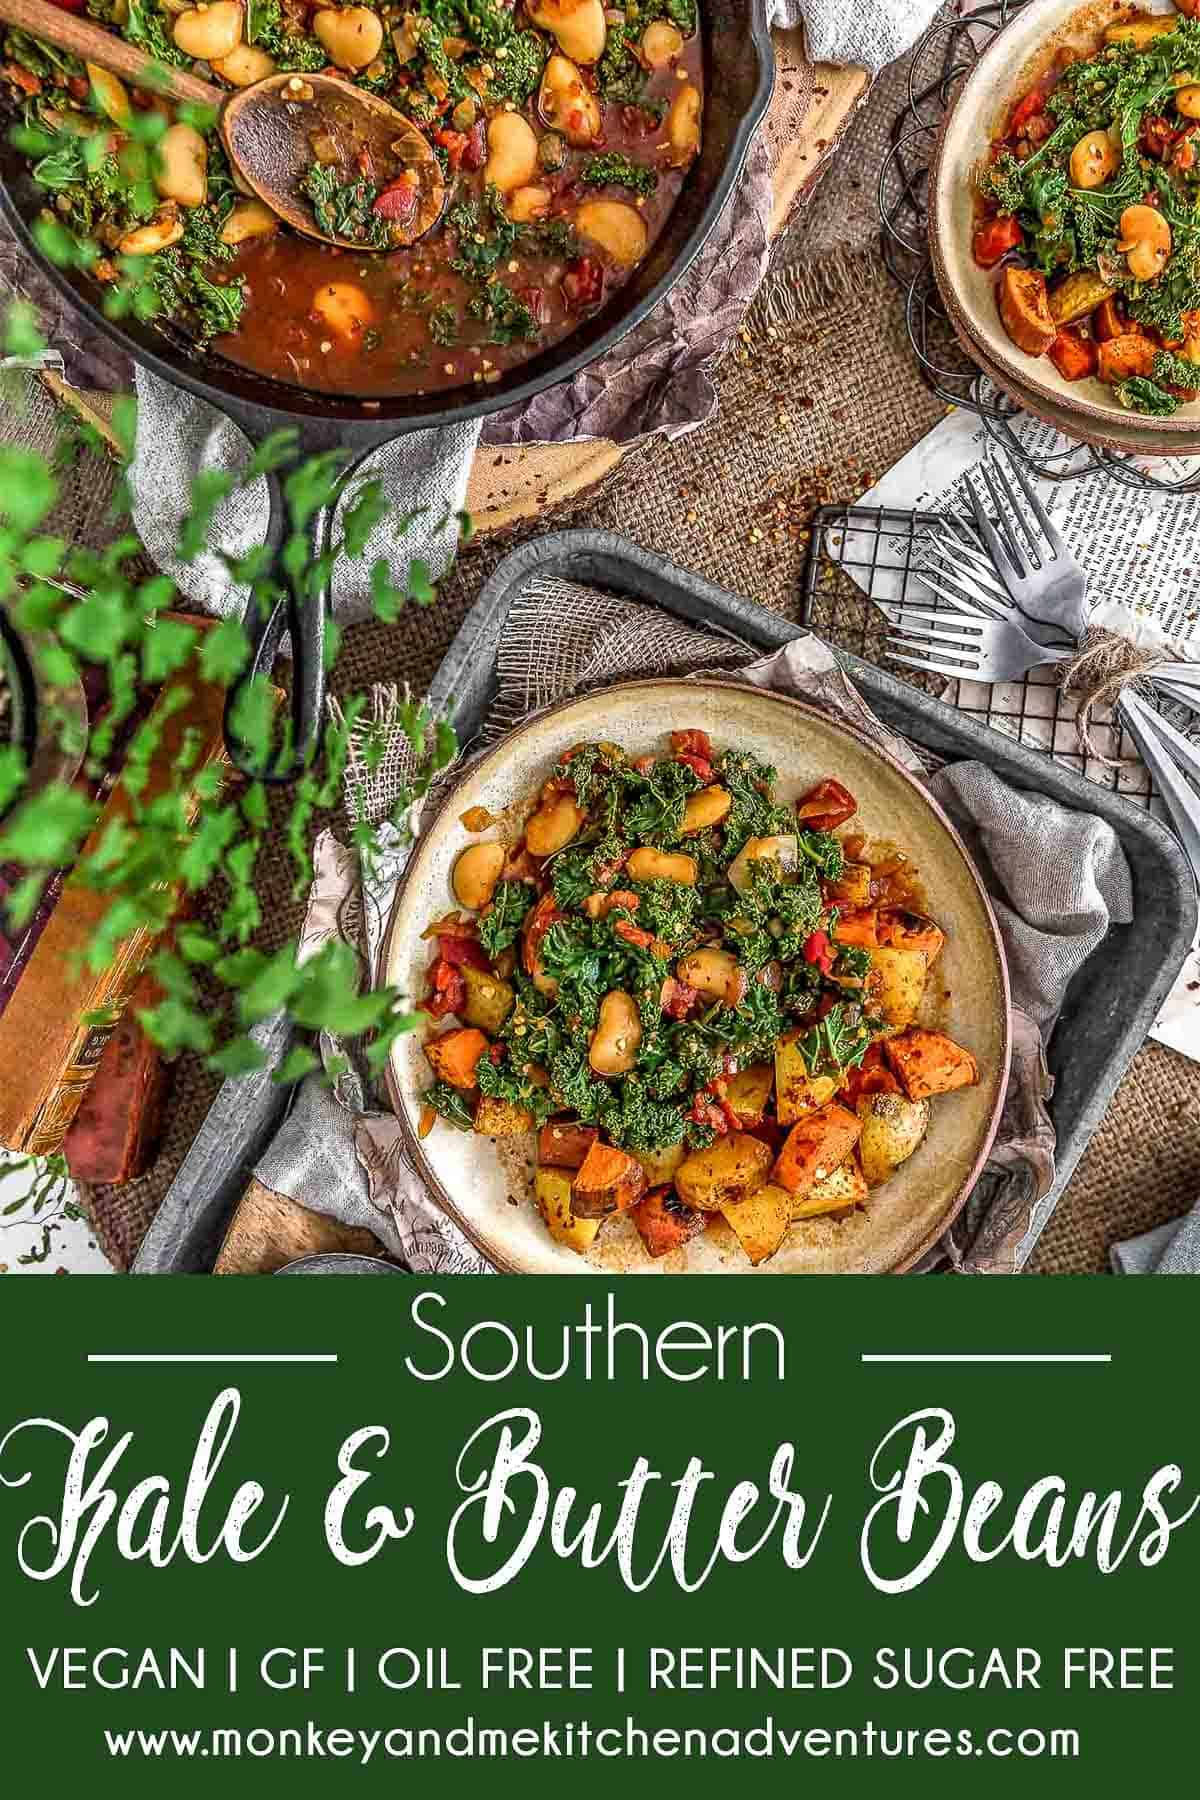 Southern Kale and Butter Beans with text description